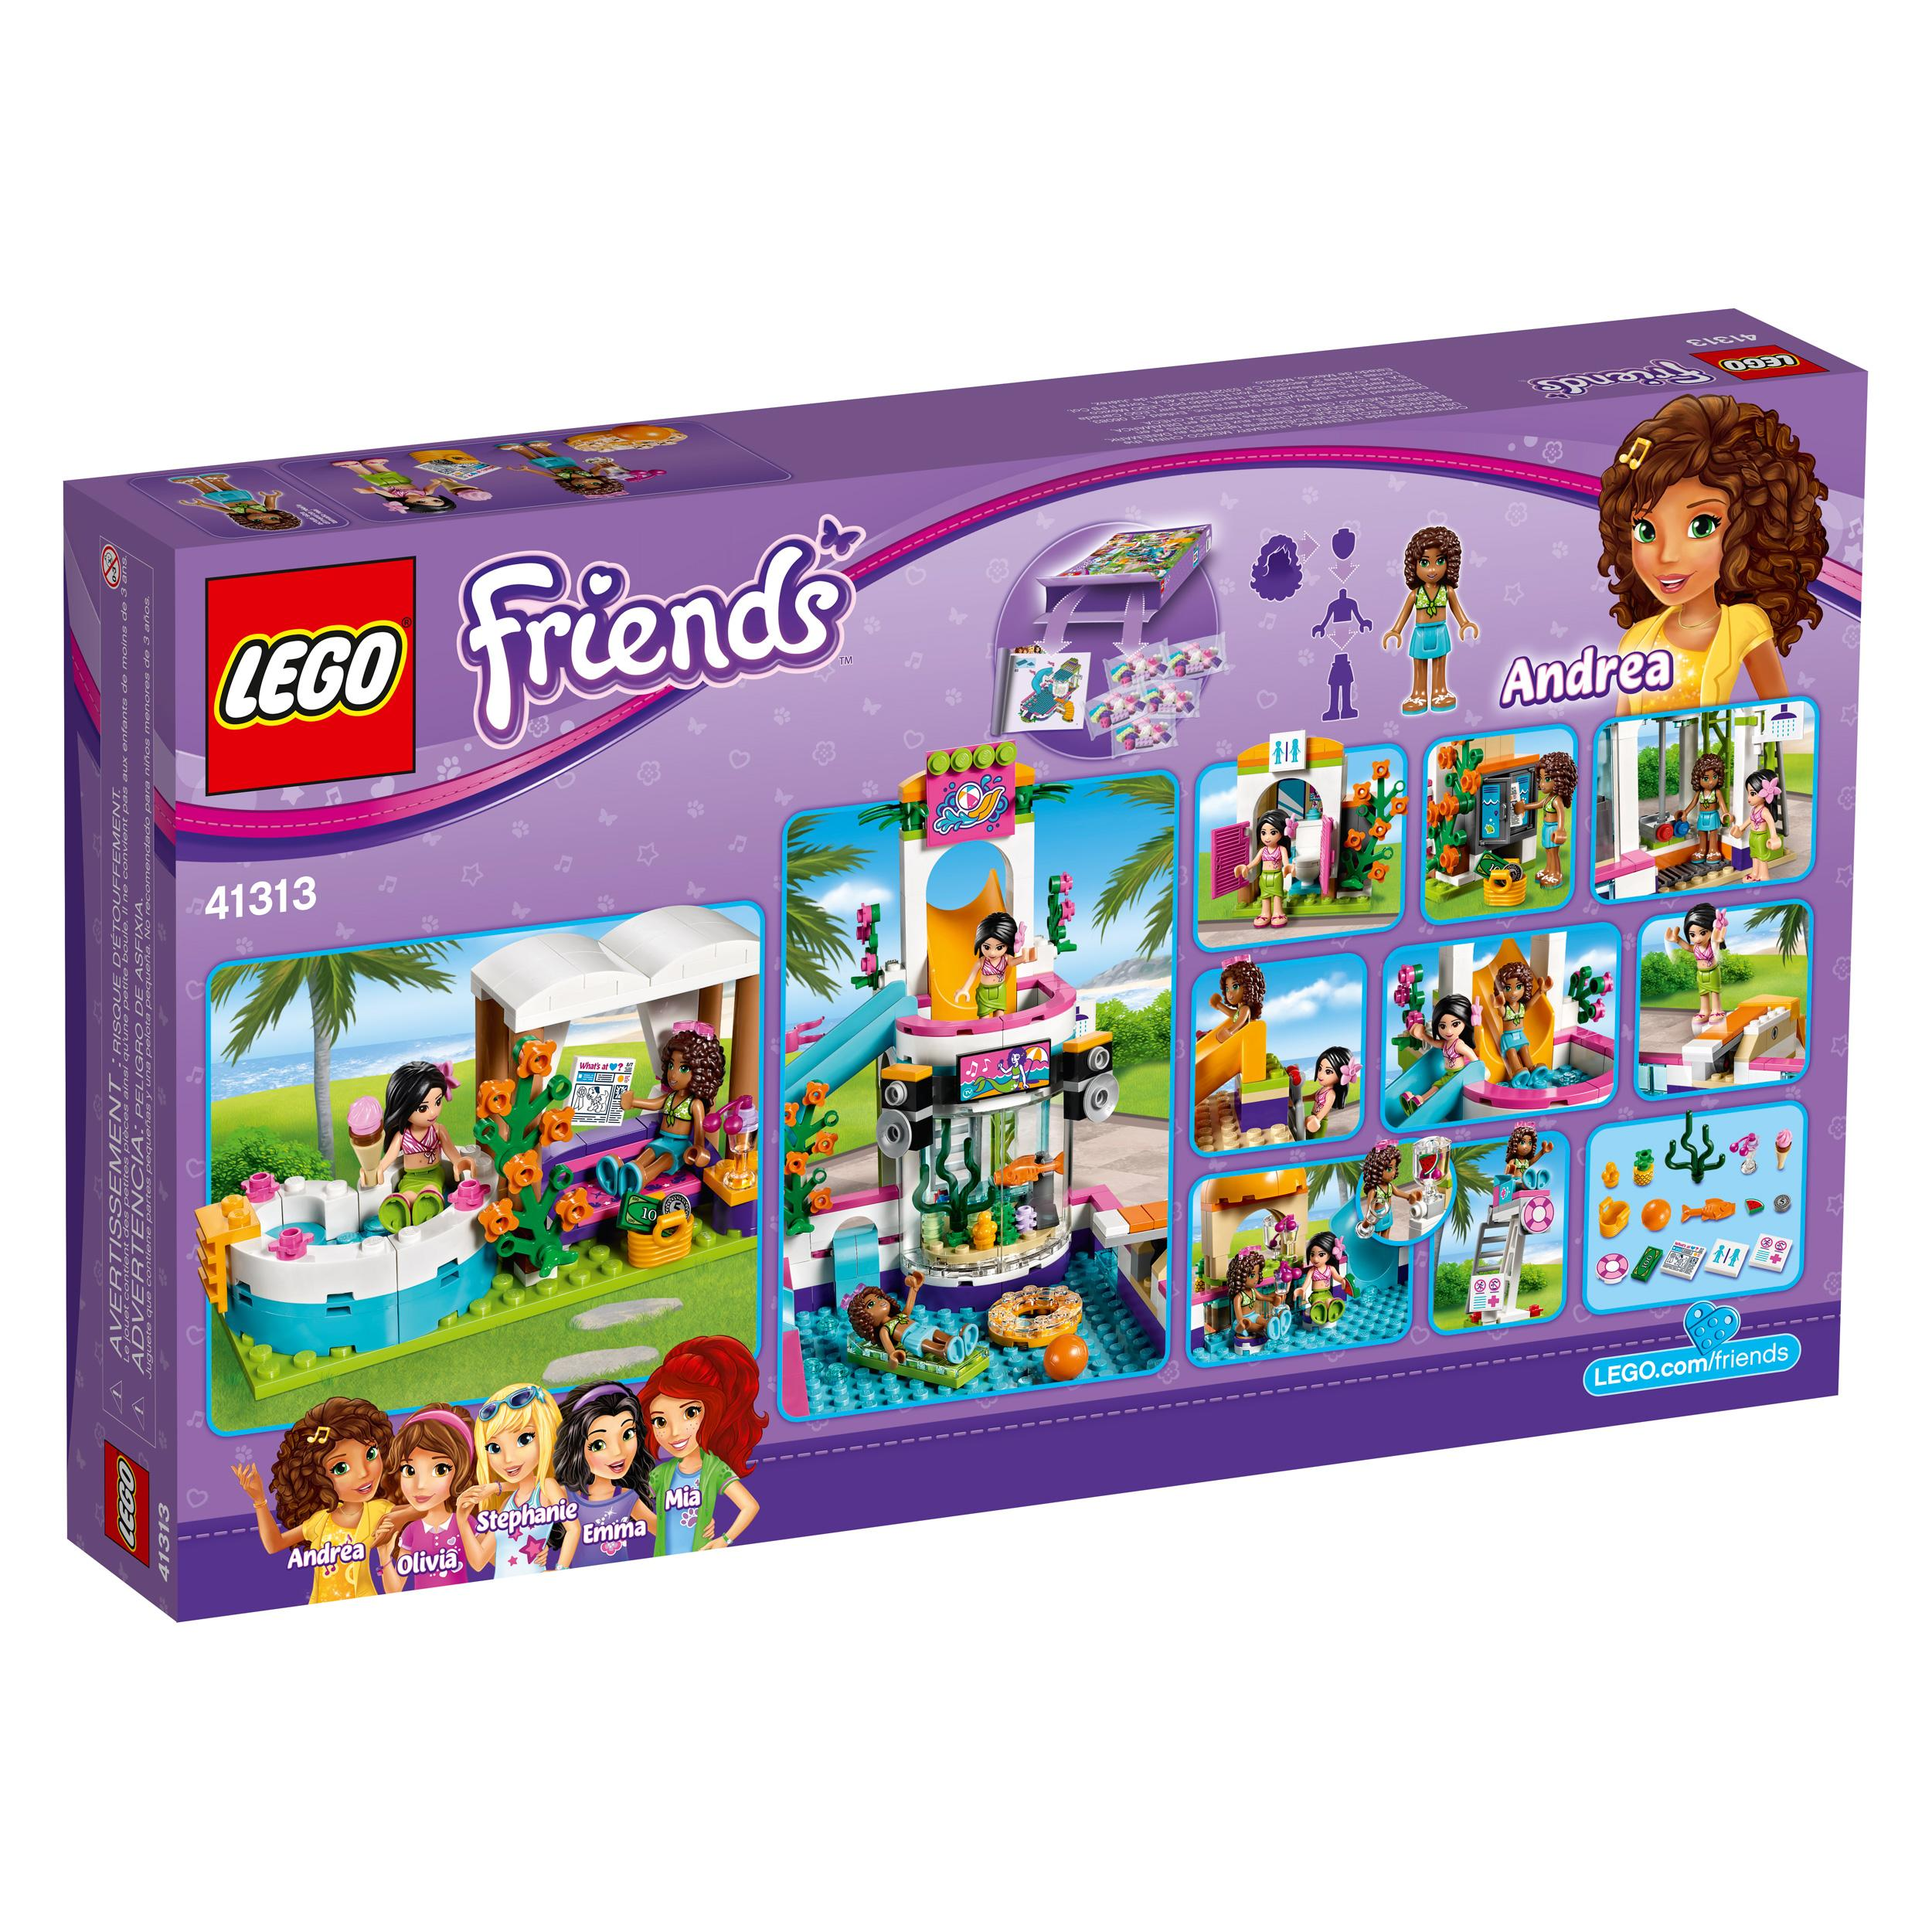 Toys For Girls Age 15 : Amazon lego friends heartlake summer pool new